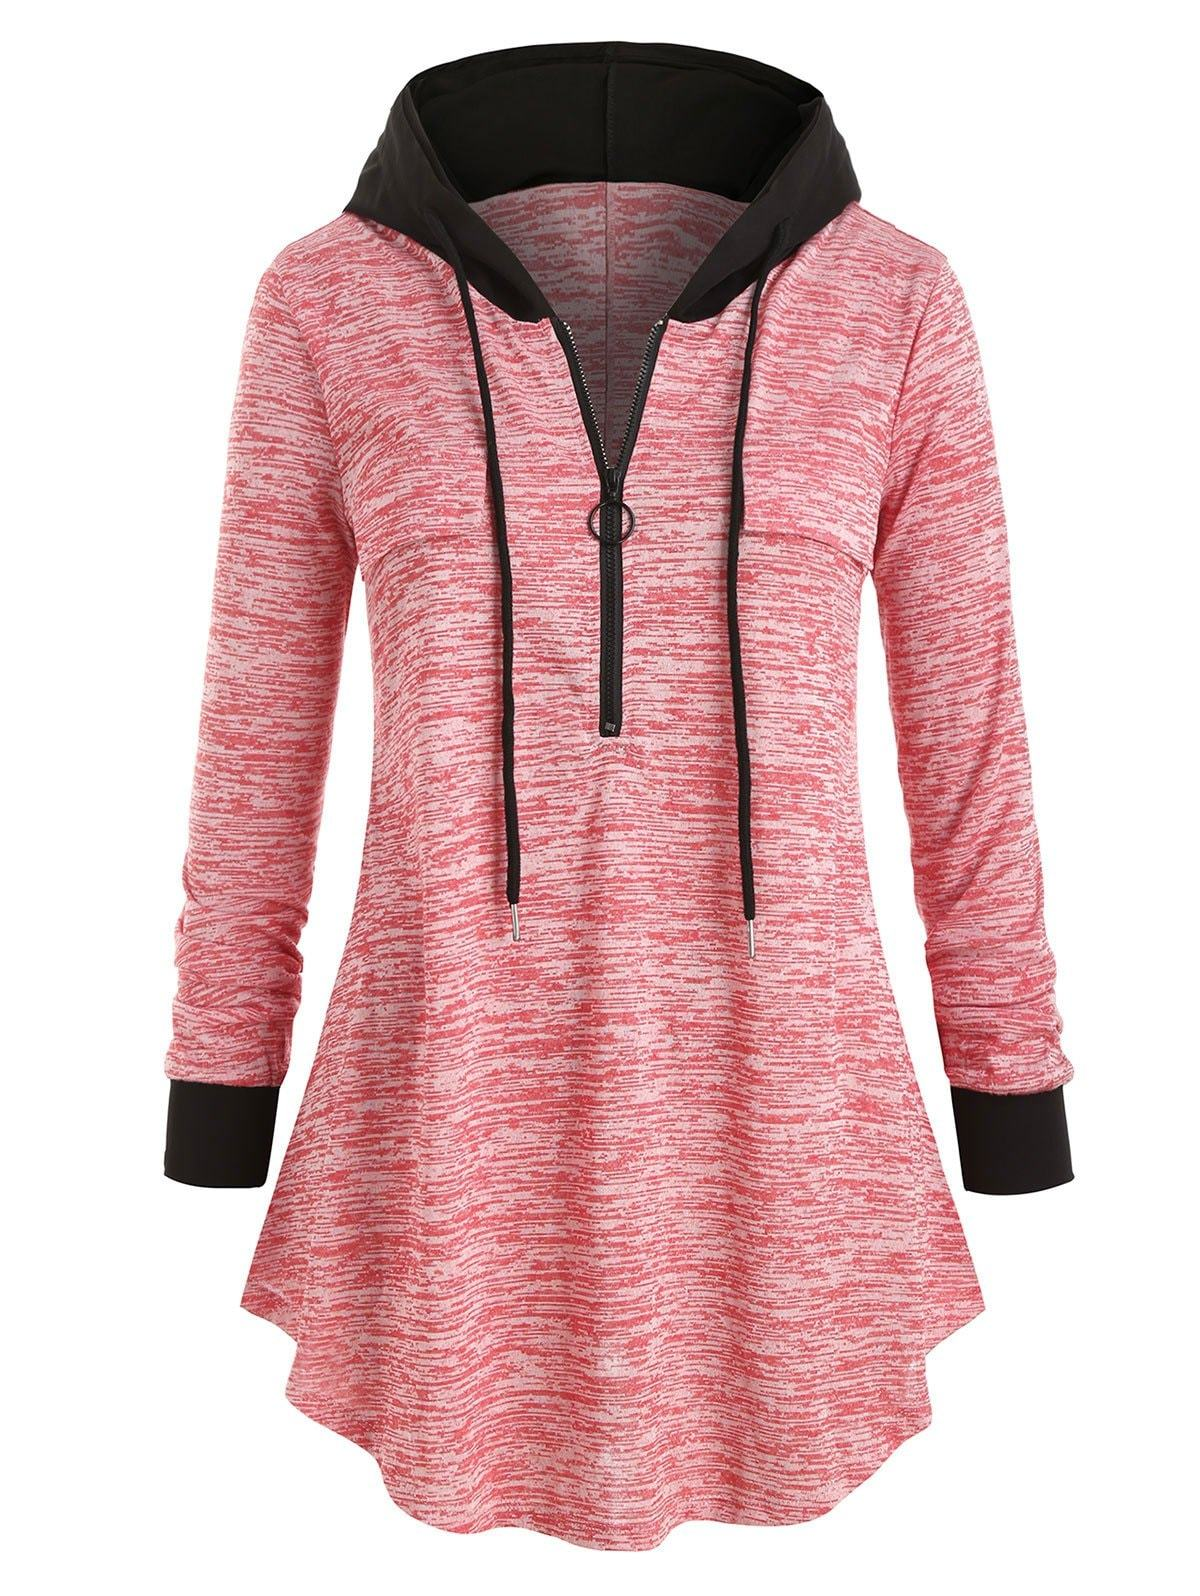 Plus Size Space Dye Half-zip Hooded Tunic Top